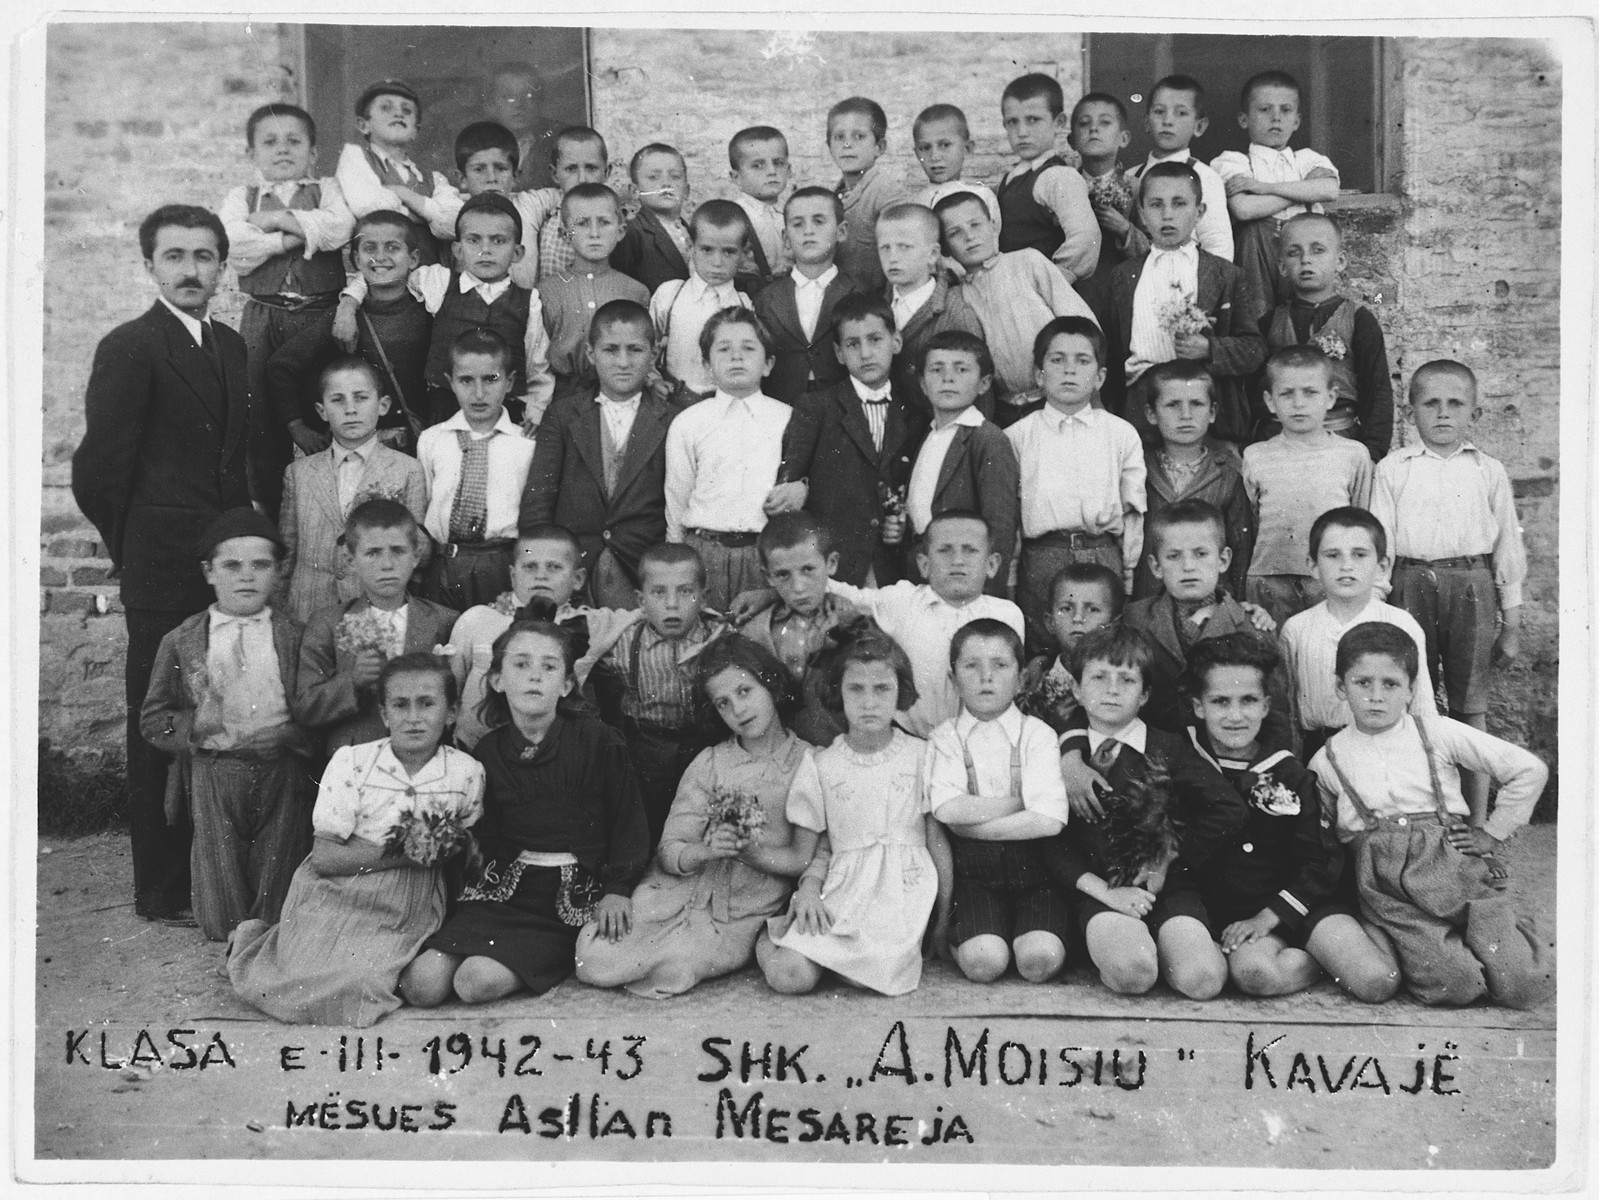 Group portrait of students at an elementary school in Kavaja, Albania.  Among the students are several Jewish refugee children from Yugoslavia.  Jasa Altarac is pictured in the front row, second from the right.